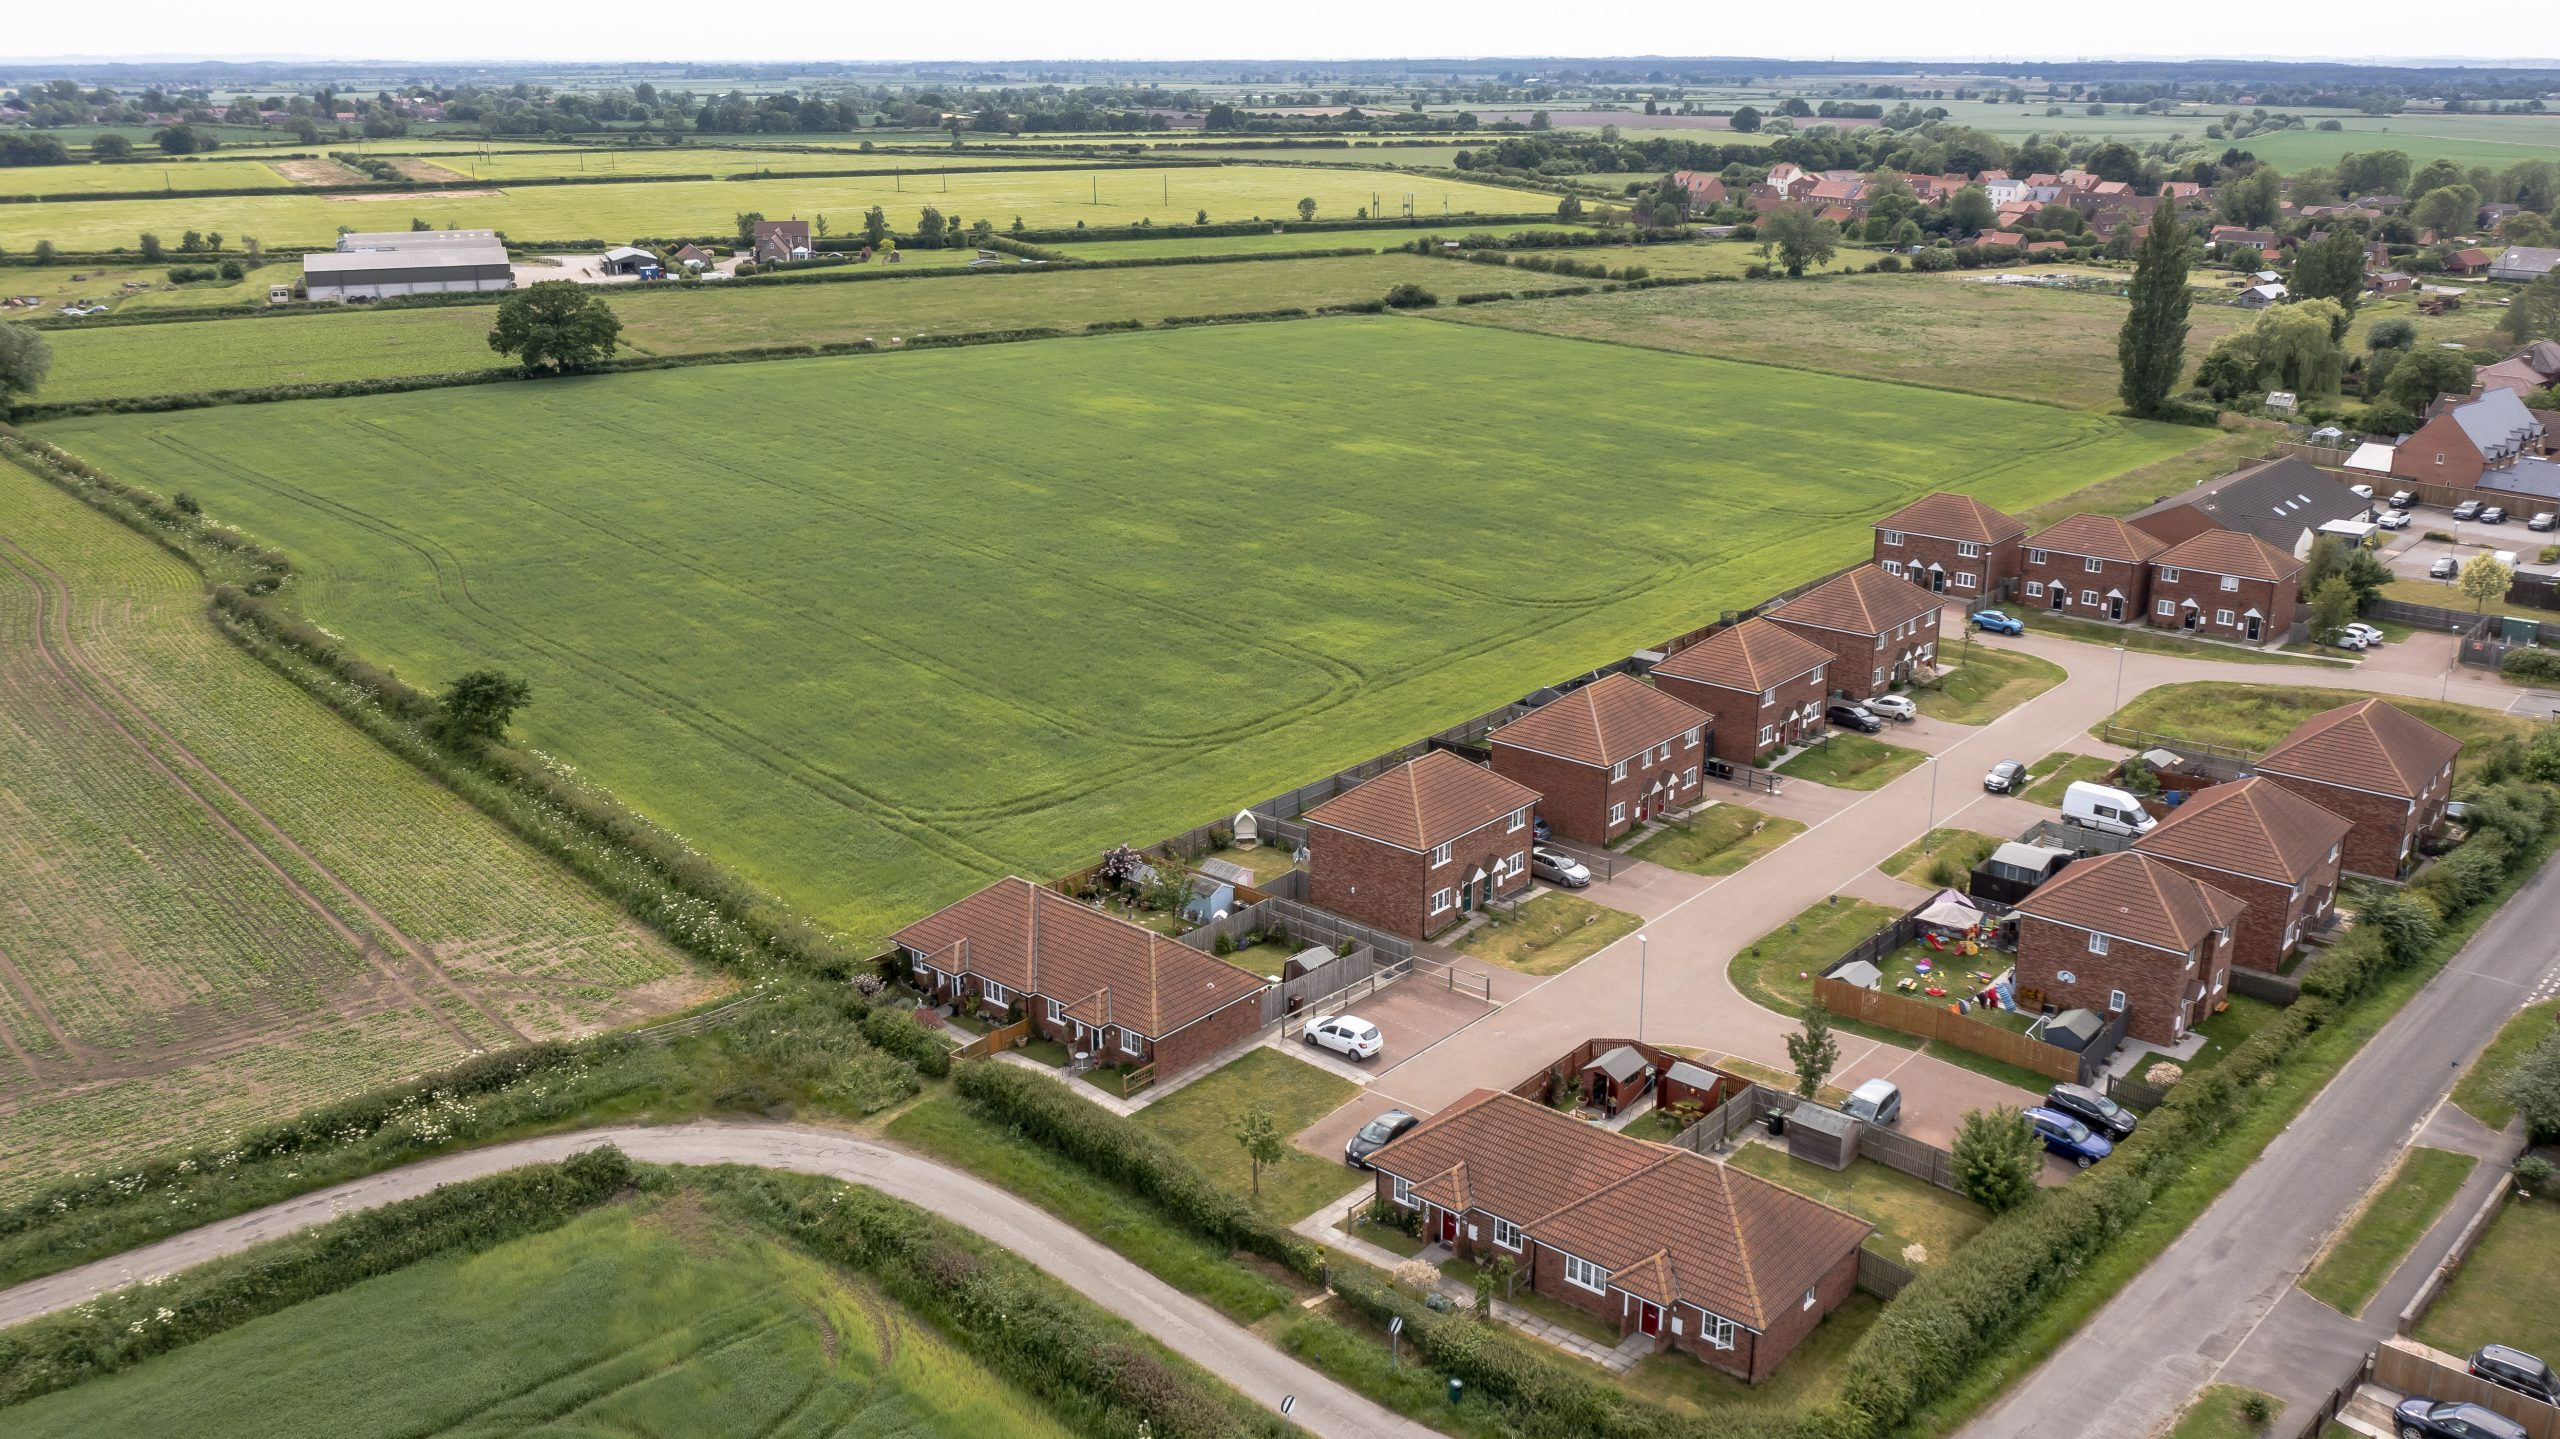 Plans for new affordable homes in village near Lincoln